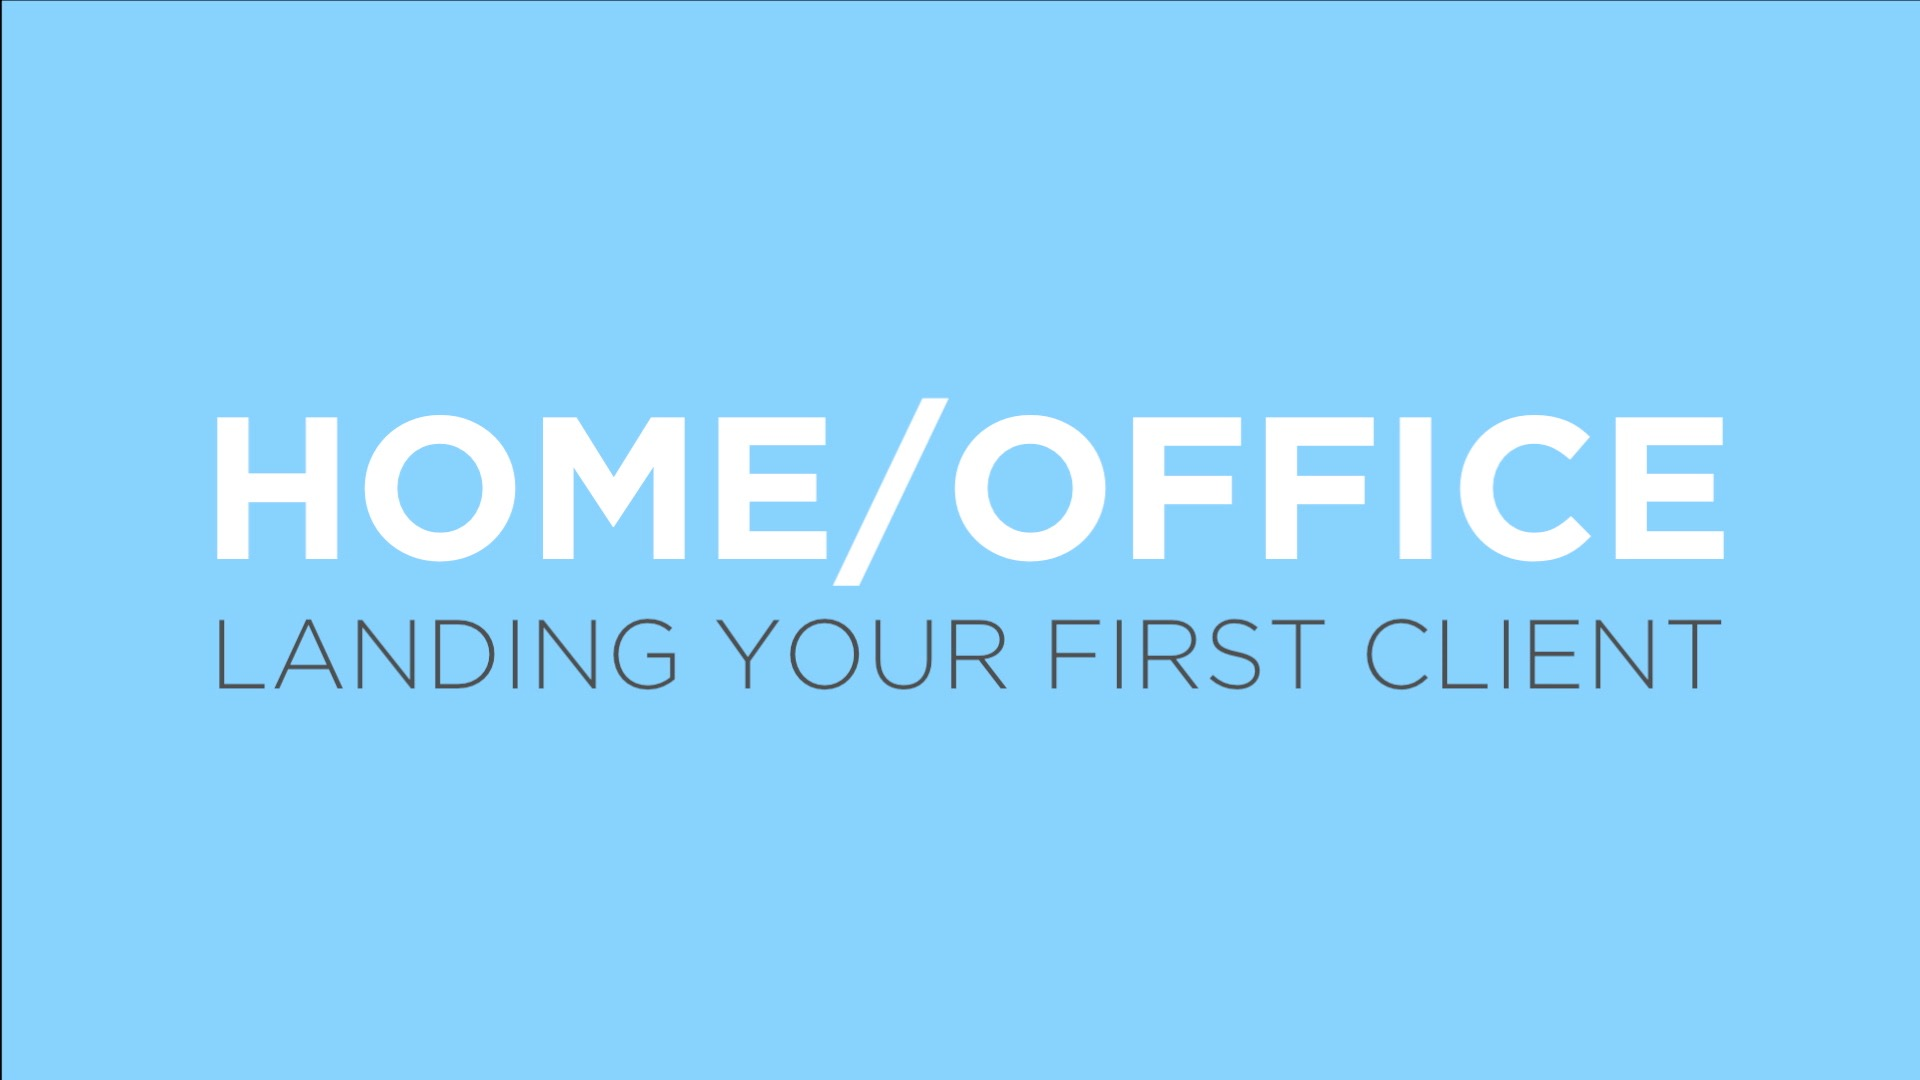 Home/Office: Landing Your First Client